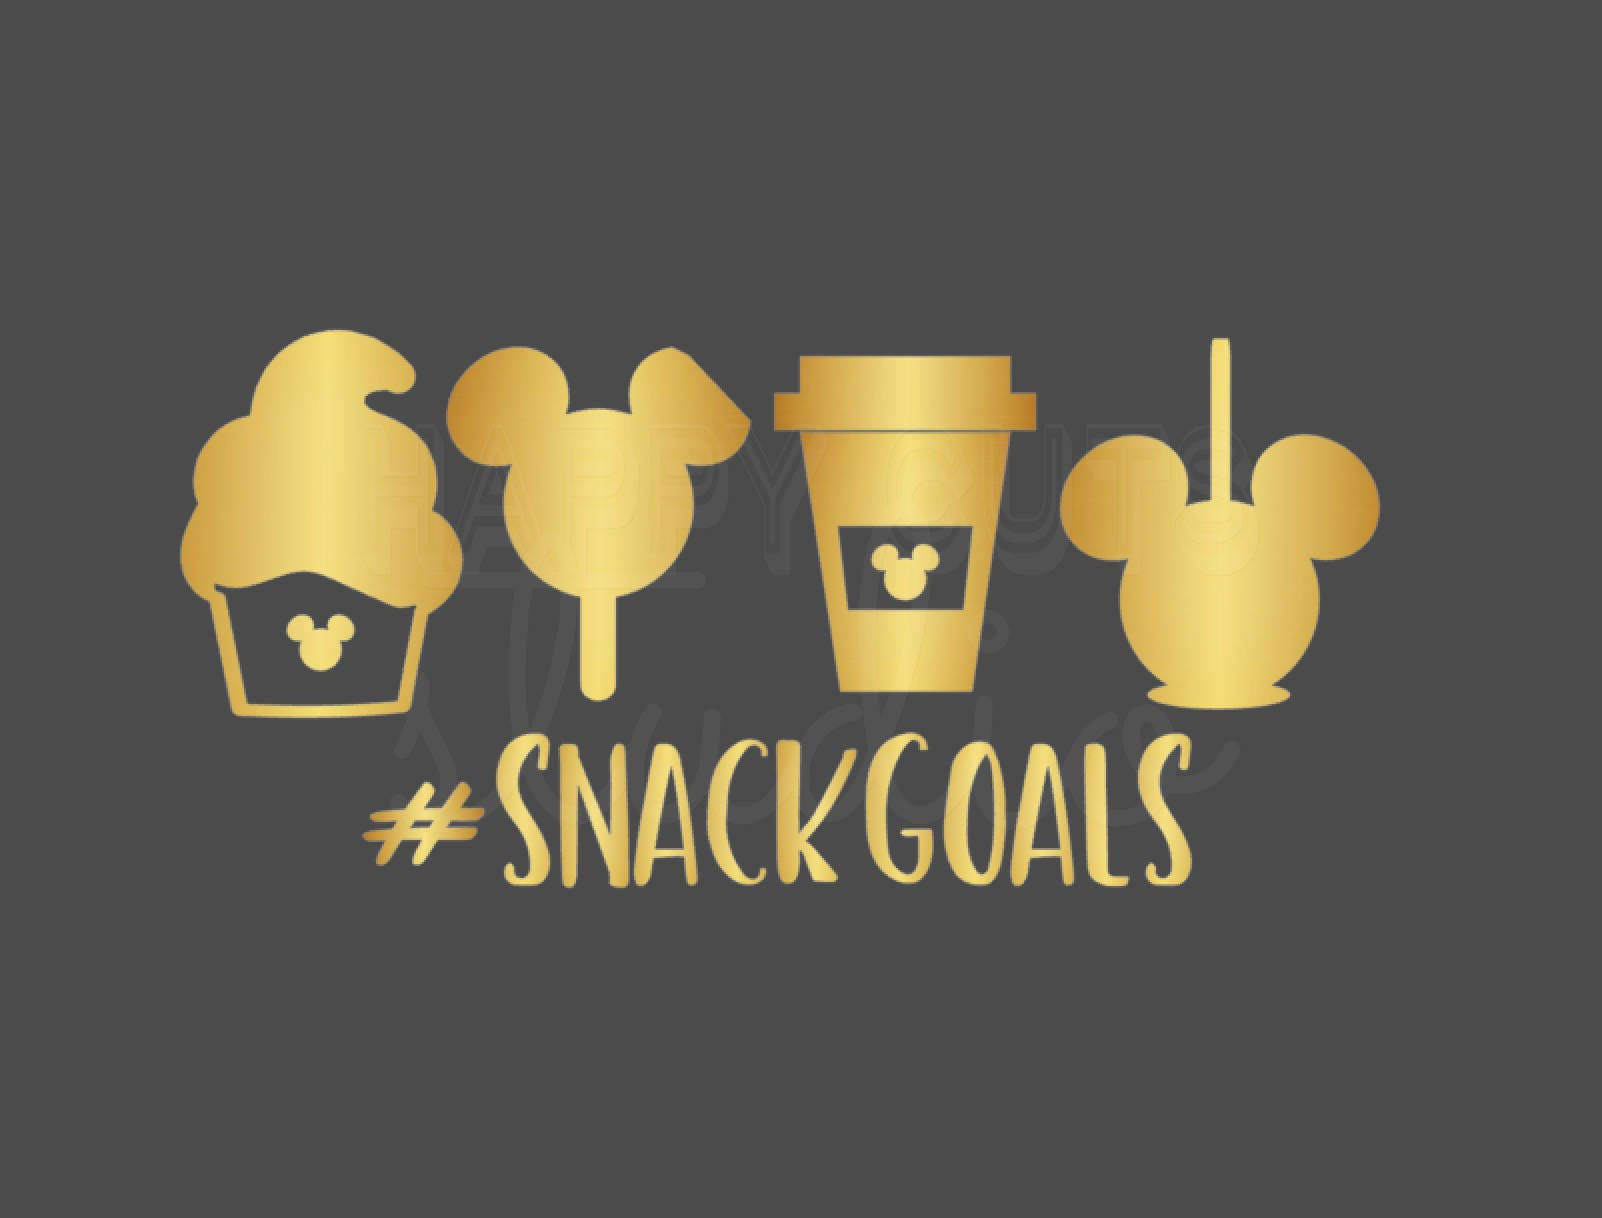 Snack Goals Snackgoals Dole Whip Mickey Mouse Ice Cream